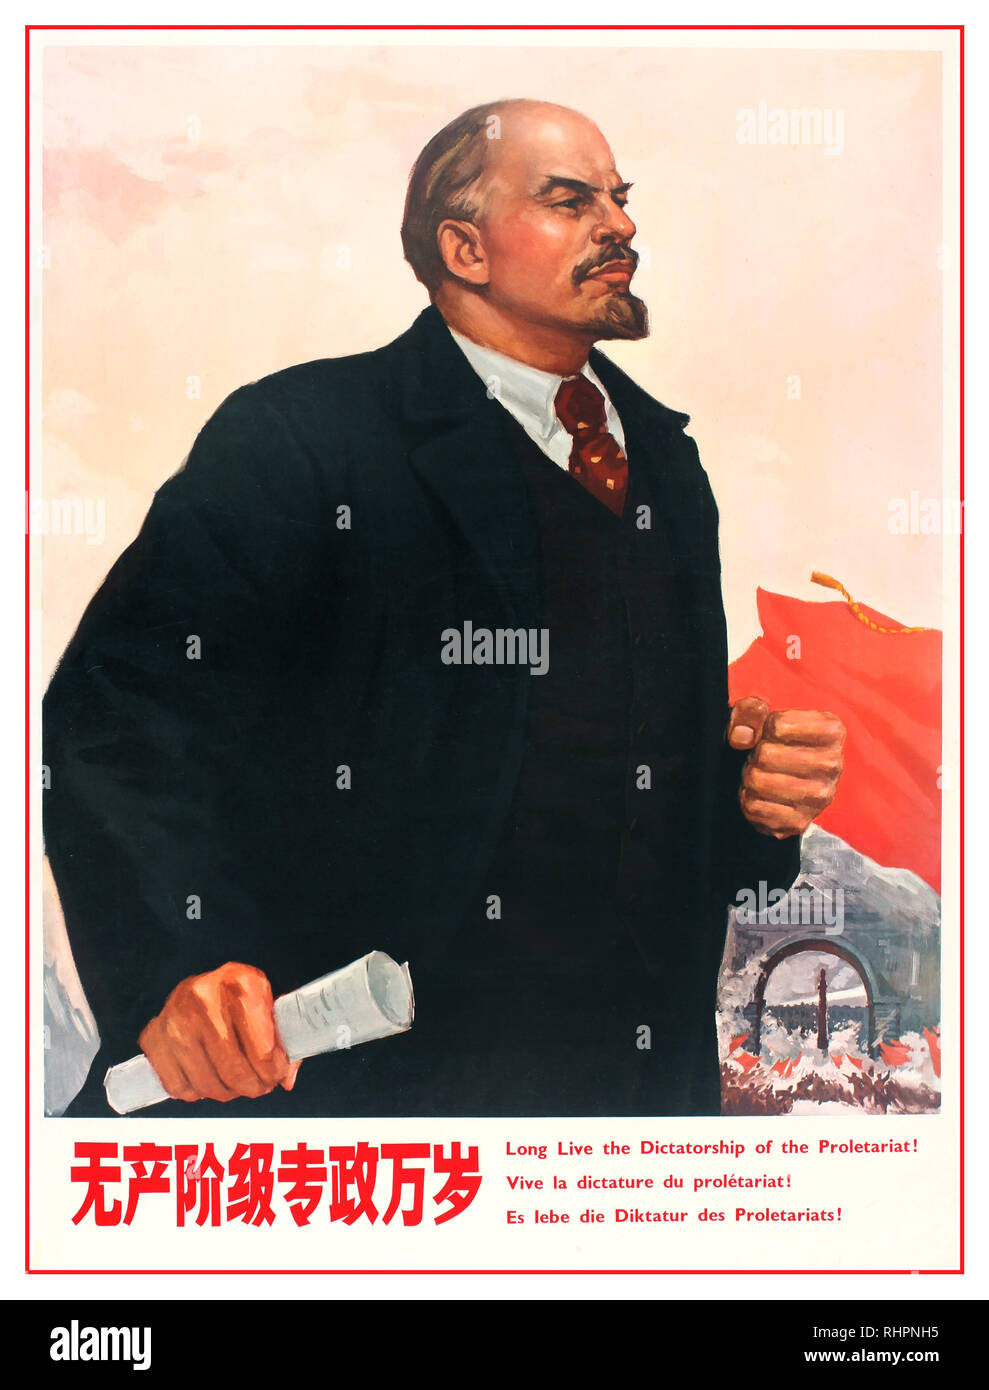 1980's Chinese Propaganda poster - Lenin - 'Long Live the Dictatorship of the Proletariat' !  Communist China 1986. - Stock Image